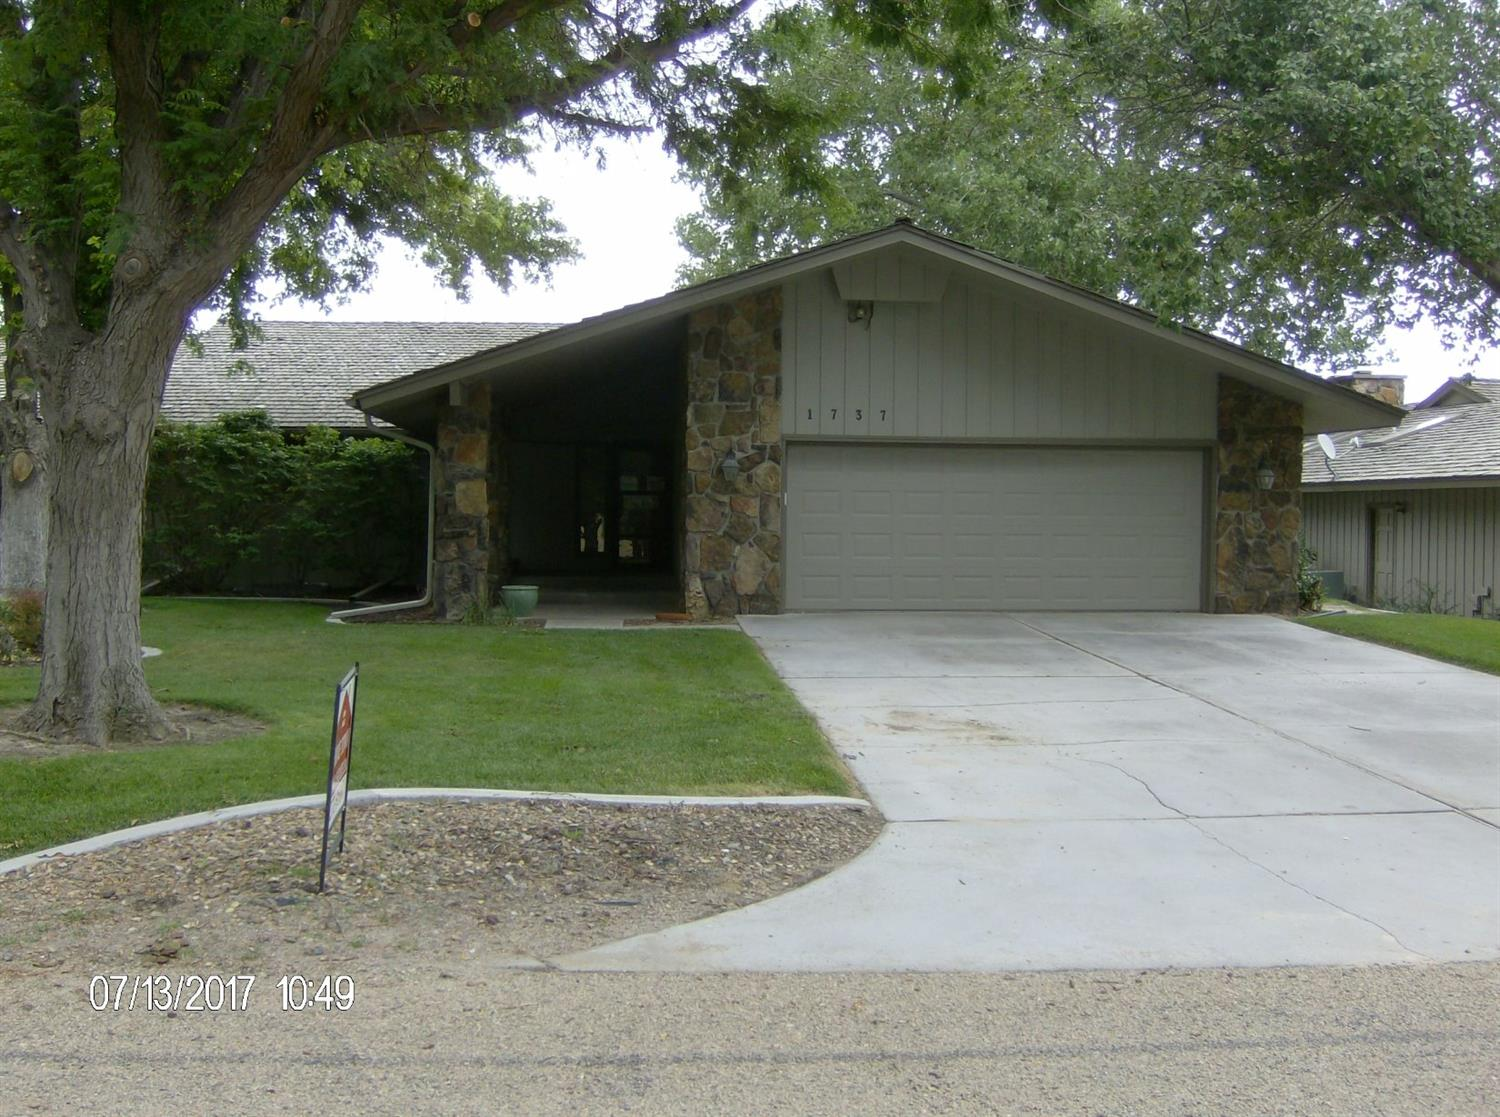 1737 Kensington Boulevard, Garden City, KS 67846